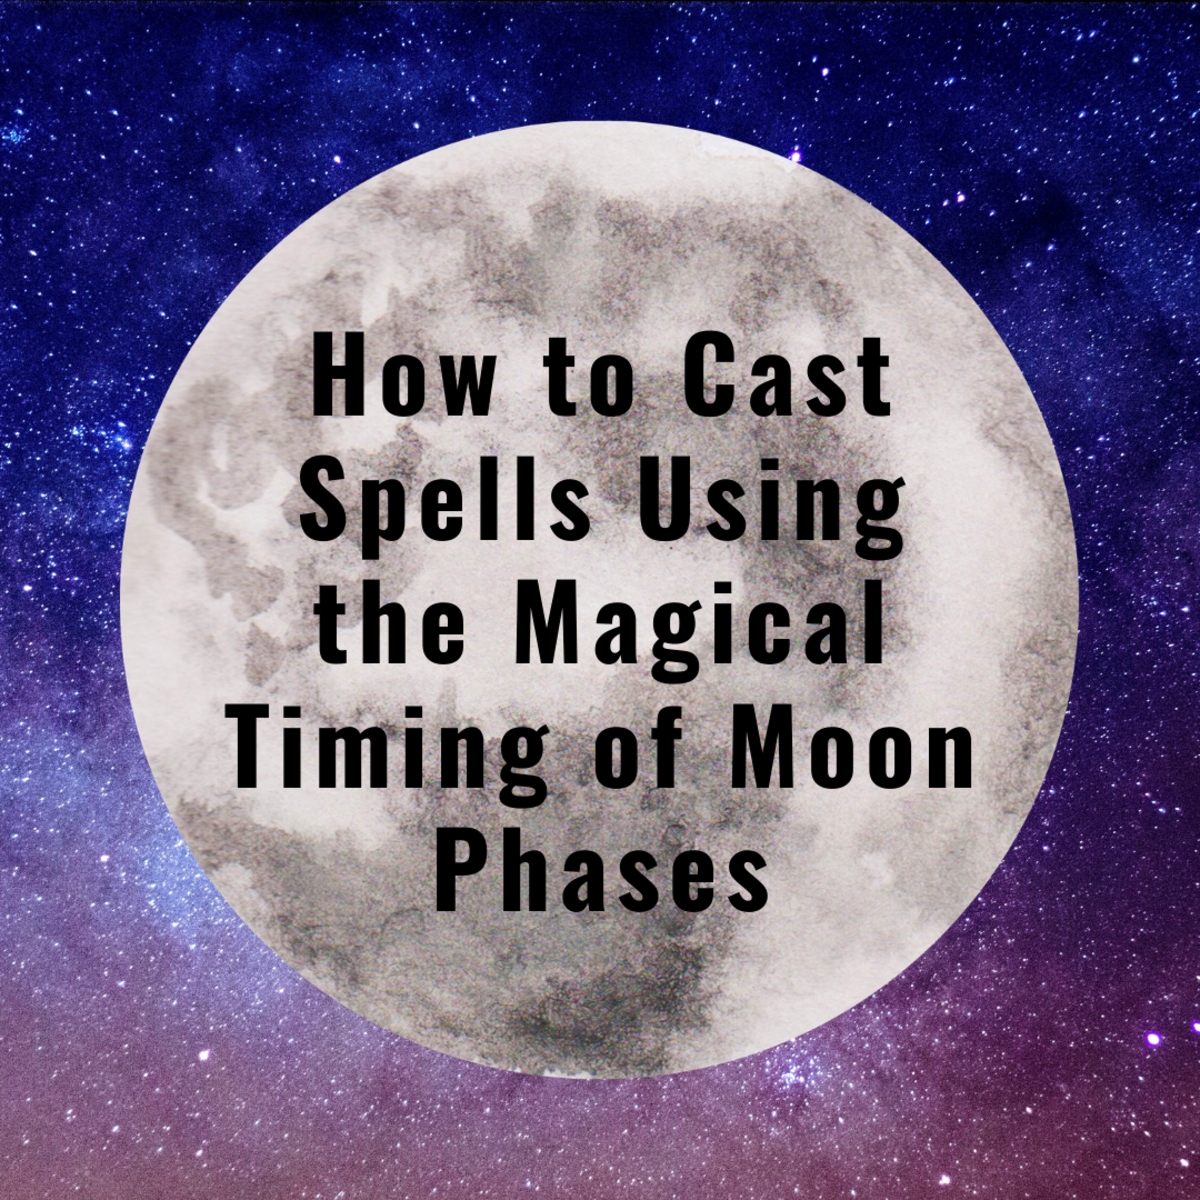 Learn all about how to cast spells by using the timing of the moon.